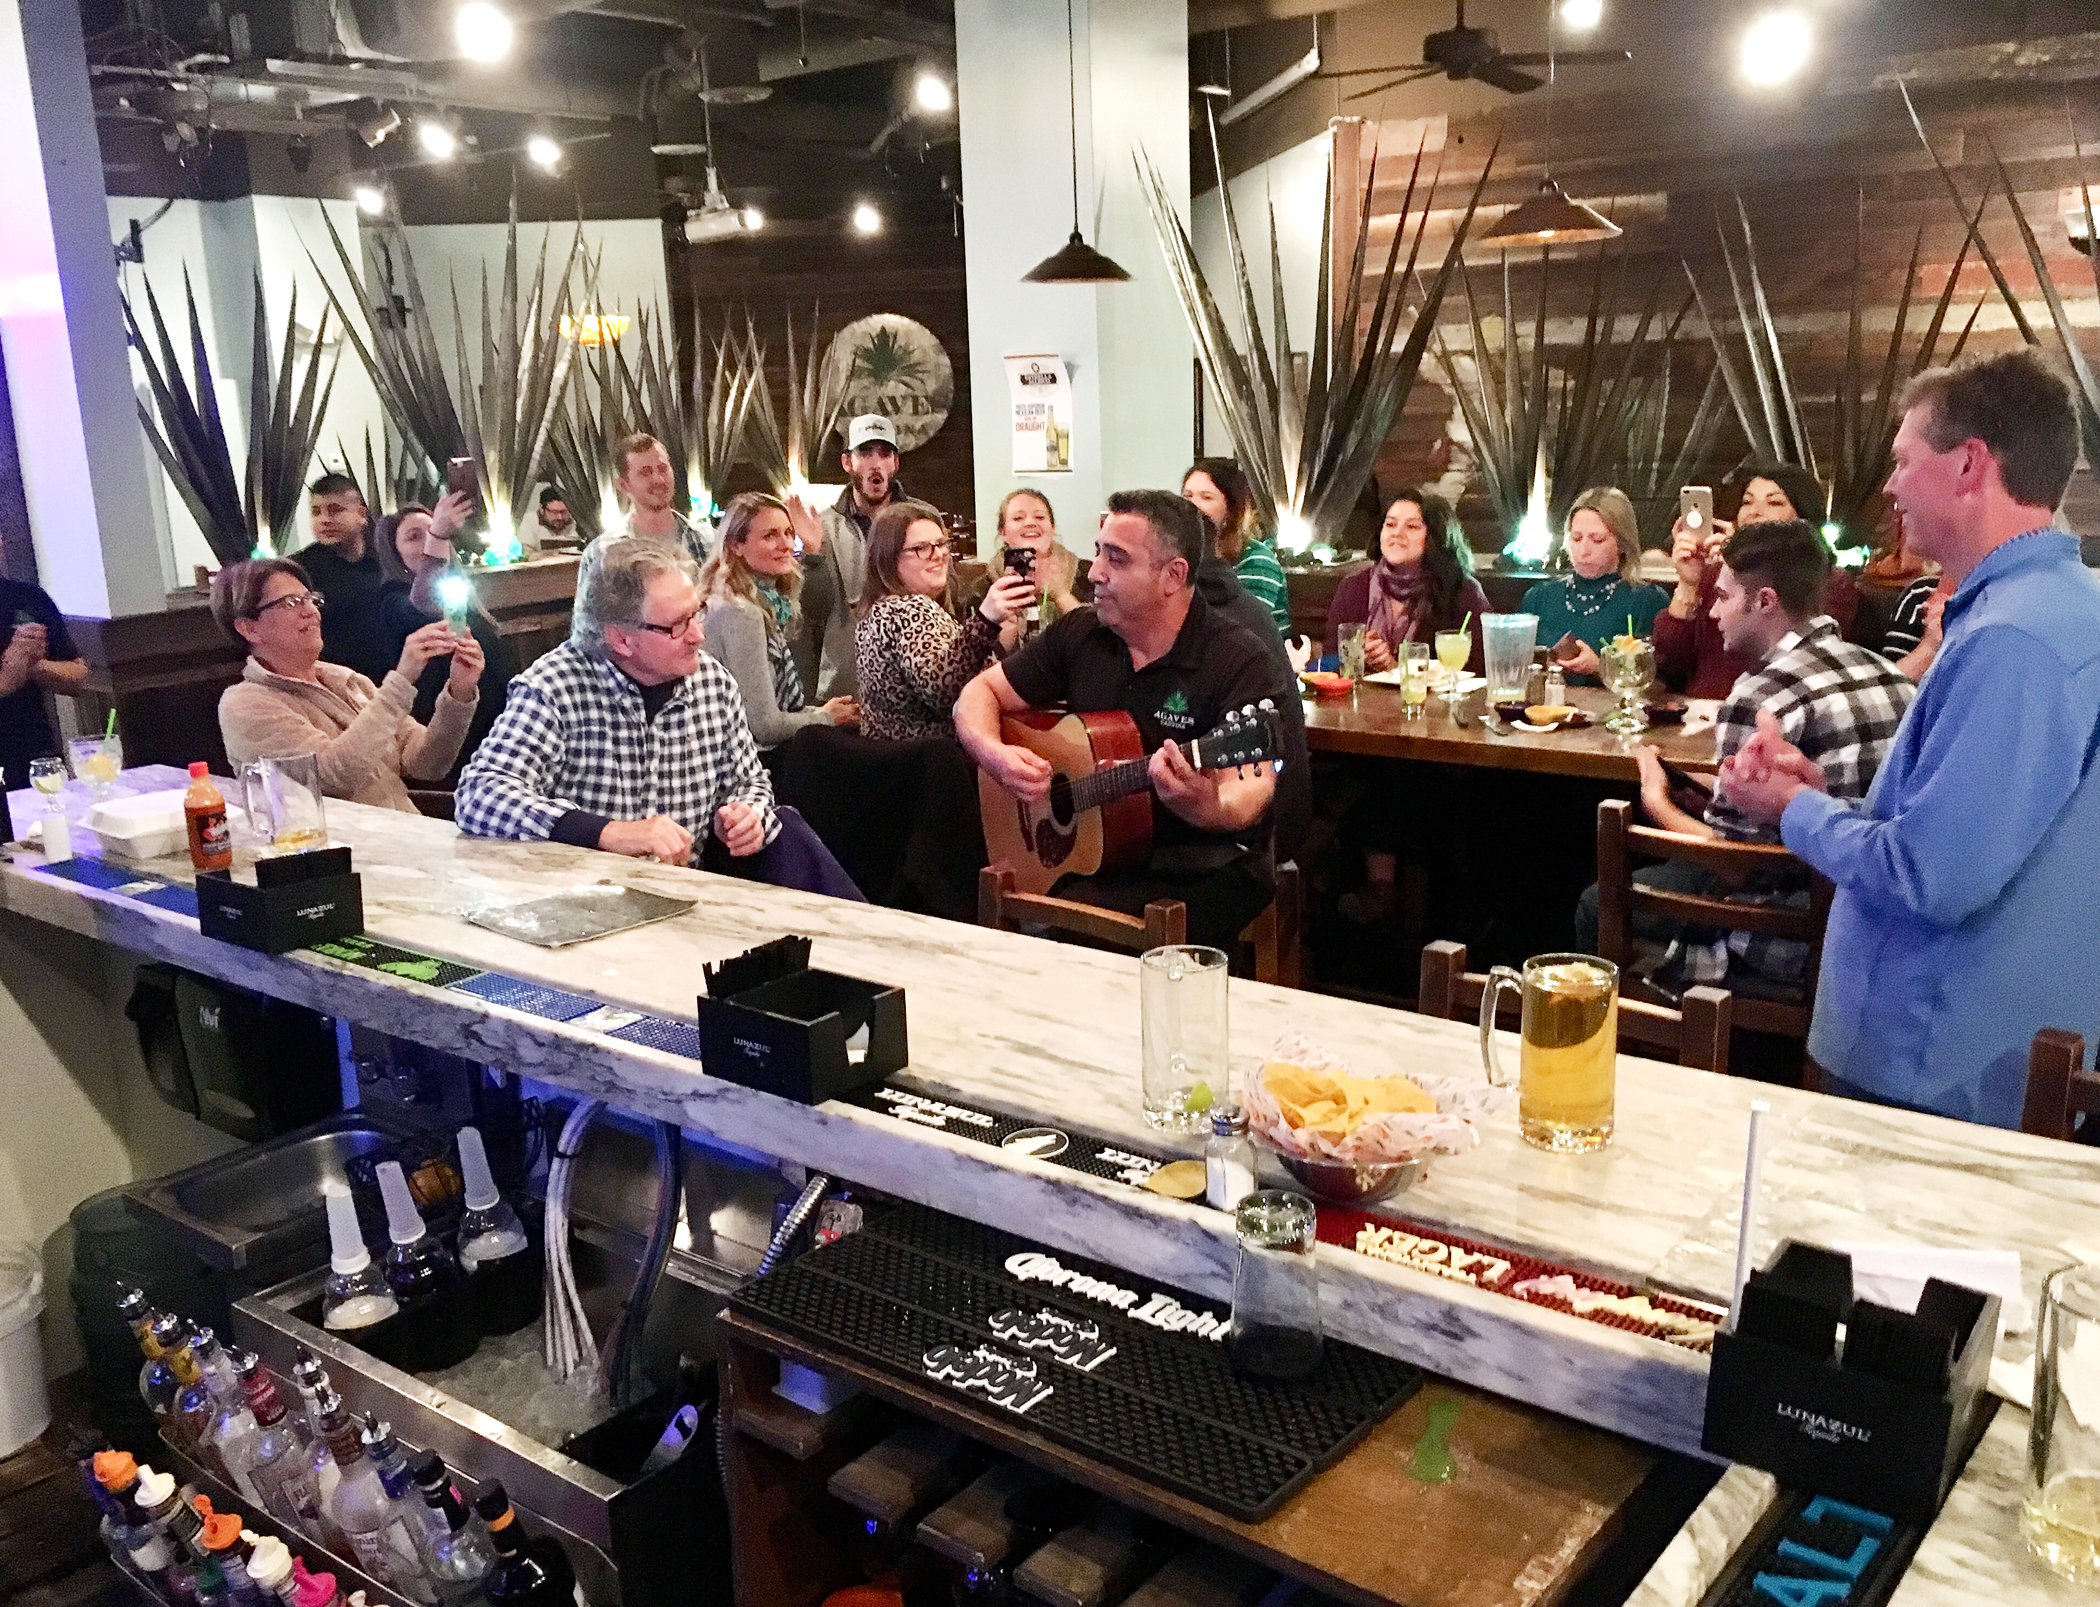 "What started out as a ""Feliz Cumpleaños"" house gesture for 15 guests at birthday gathering at Daniel Island's Agaves Cantina last month turned into full renditions of ""Feliz Navidad,"" not only sung by the entire restaurant, but led by the stunning voice of Mario Palacios, an Agaves Cantina server and bartender. Soon, kindhearted patrons who witnessed the singing began saying ""Agaves' Got Talent,"" mimicking the popular ""America's Got Talent"" tag line from the singing and dancing show on television. ""When this fellow started singing, we were all mesmerized!"" said island resident Baron Christopher Hanson, who was enjoying dinner at the restaurant that night and captured this photo."